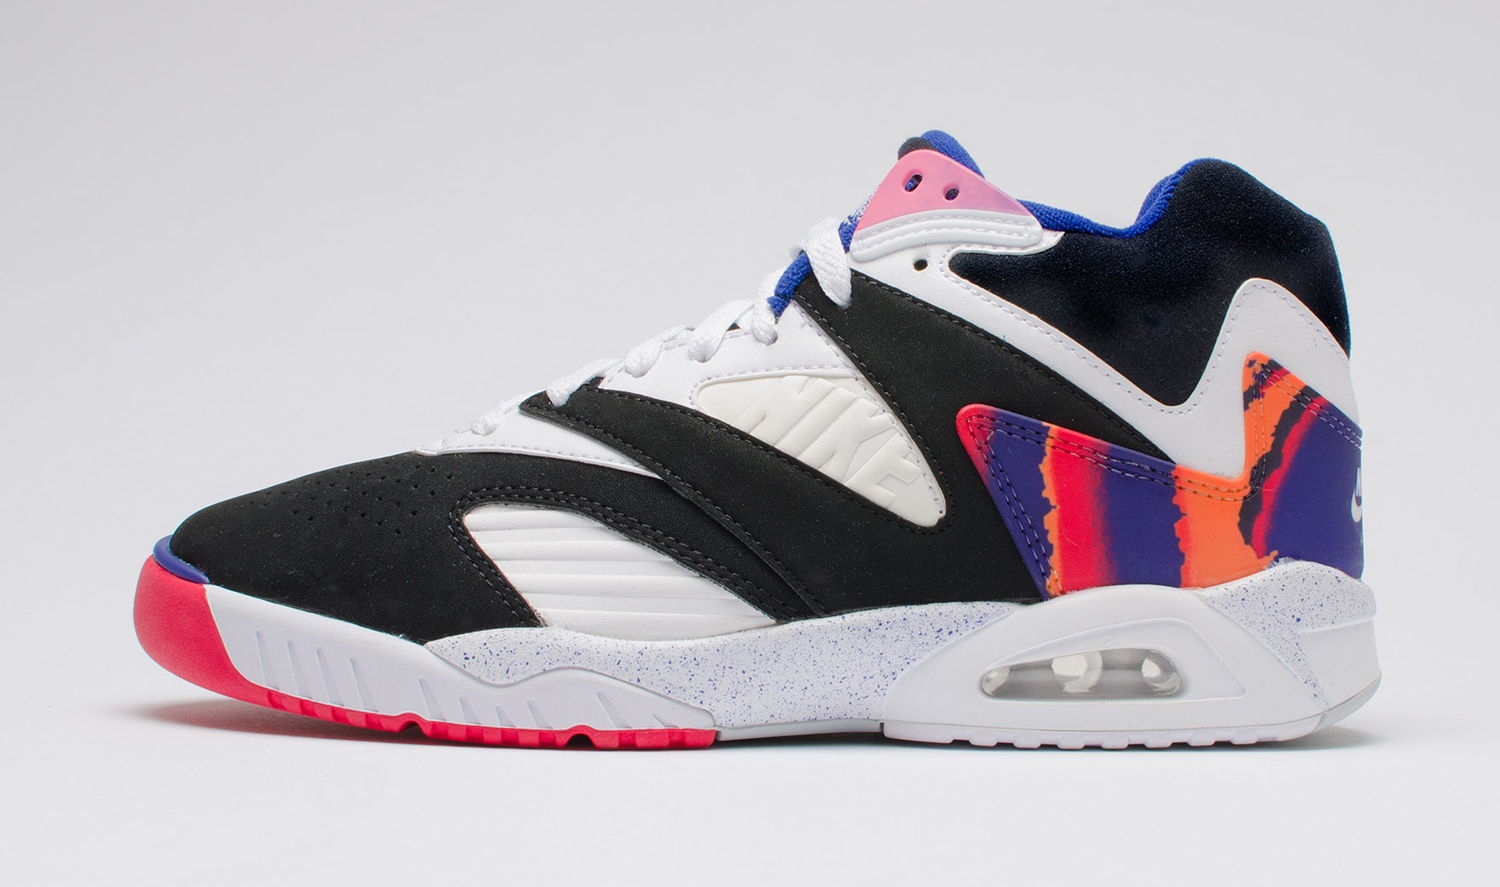 Andre Agassi Shoes Air Tech Challenge